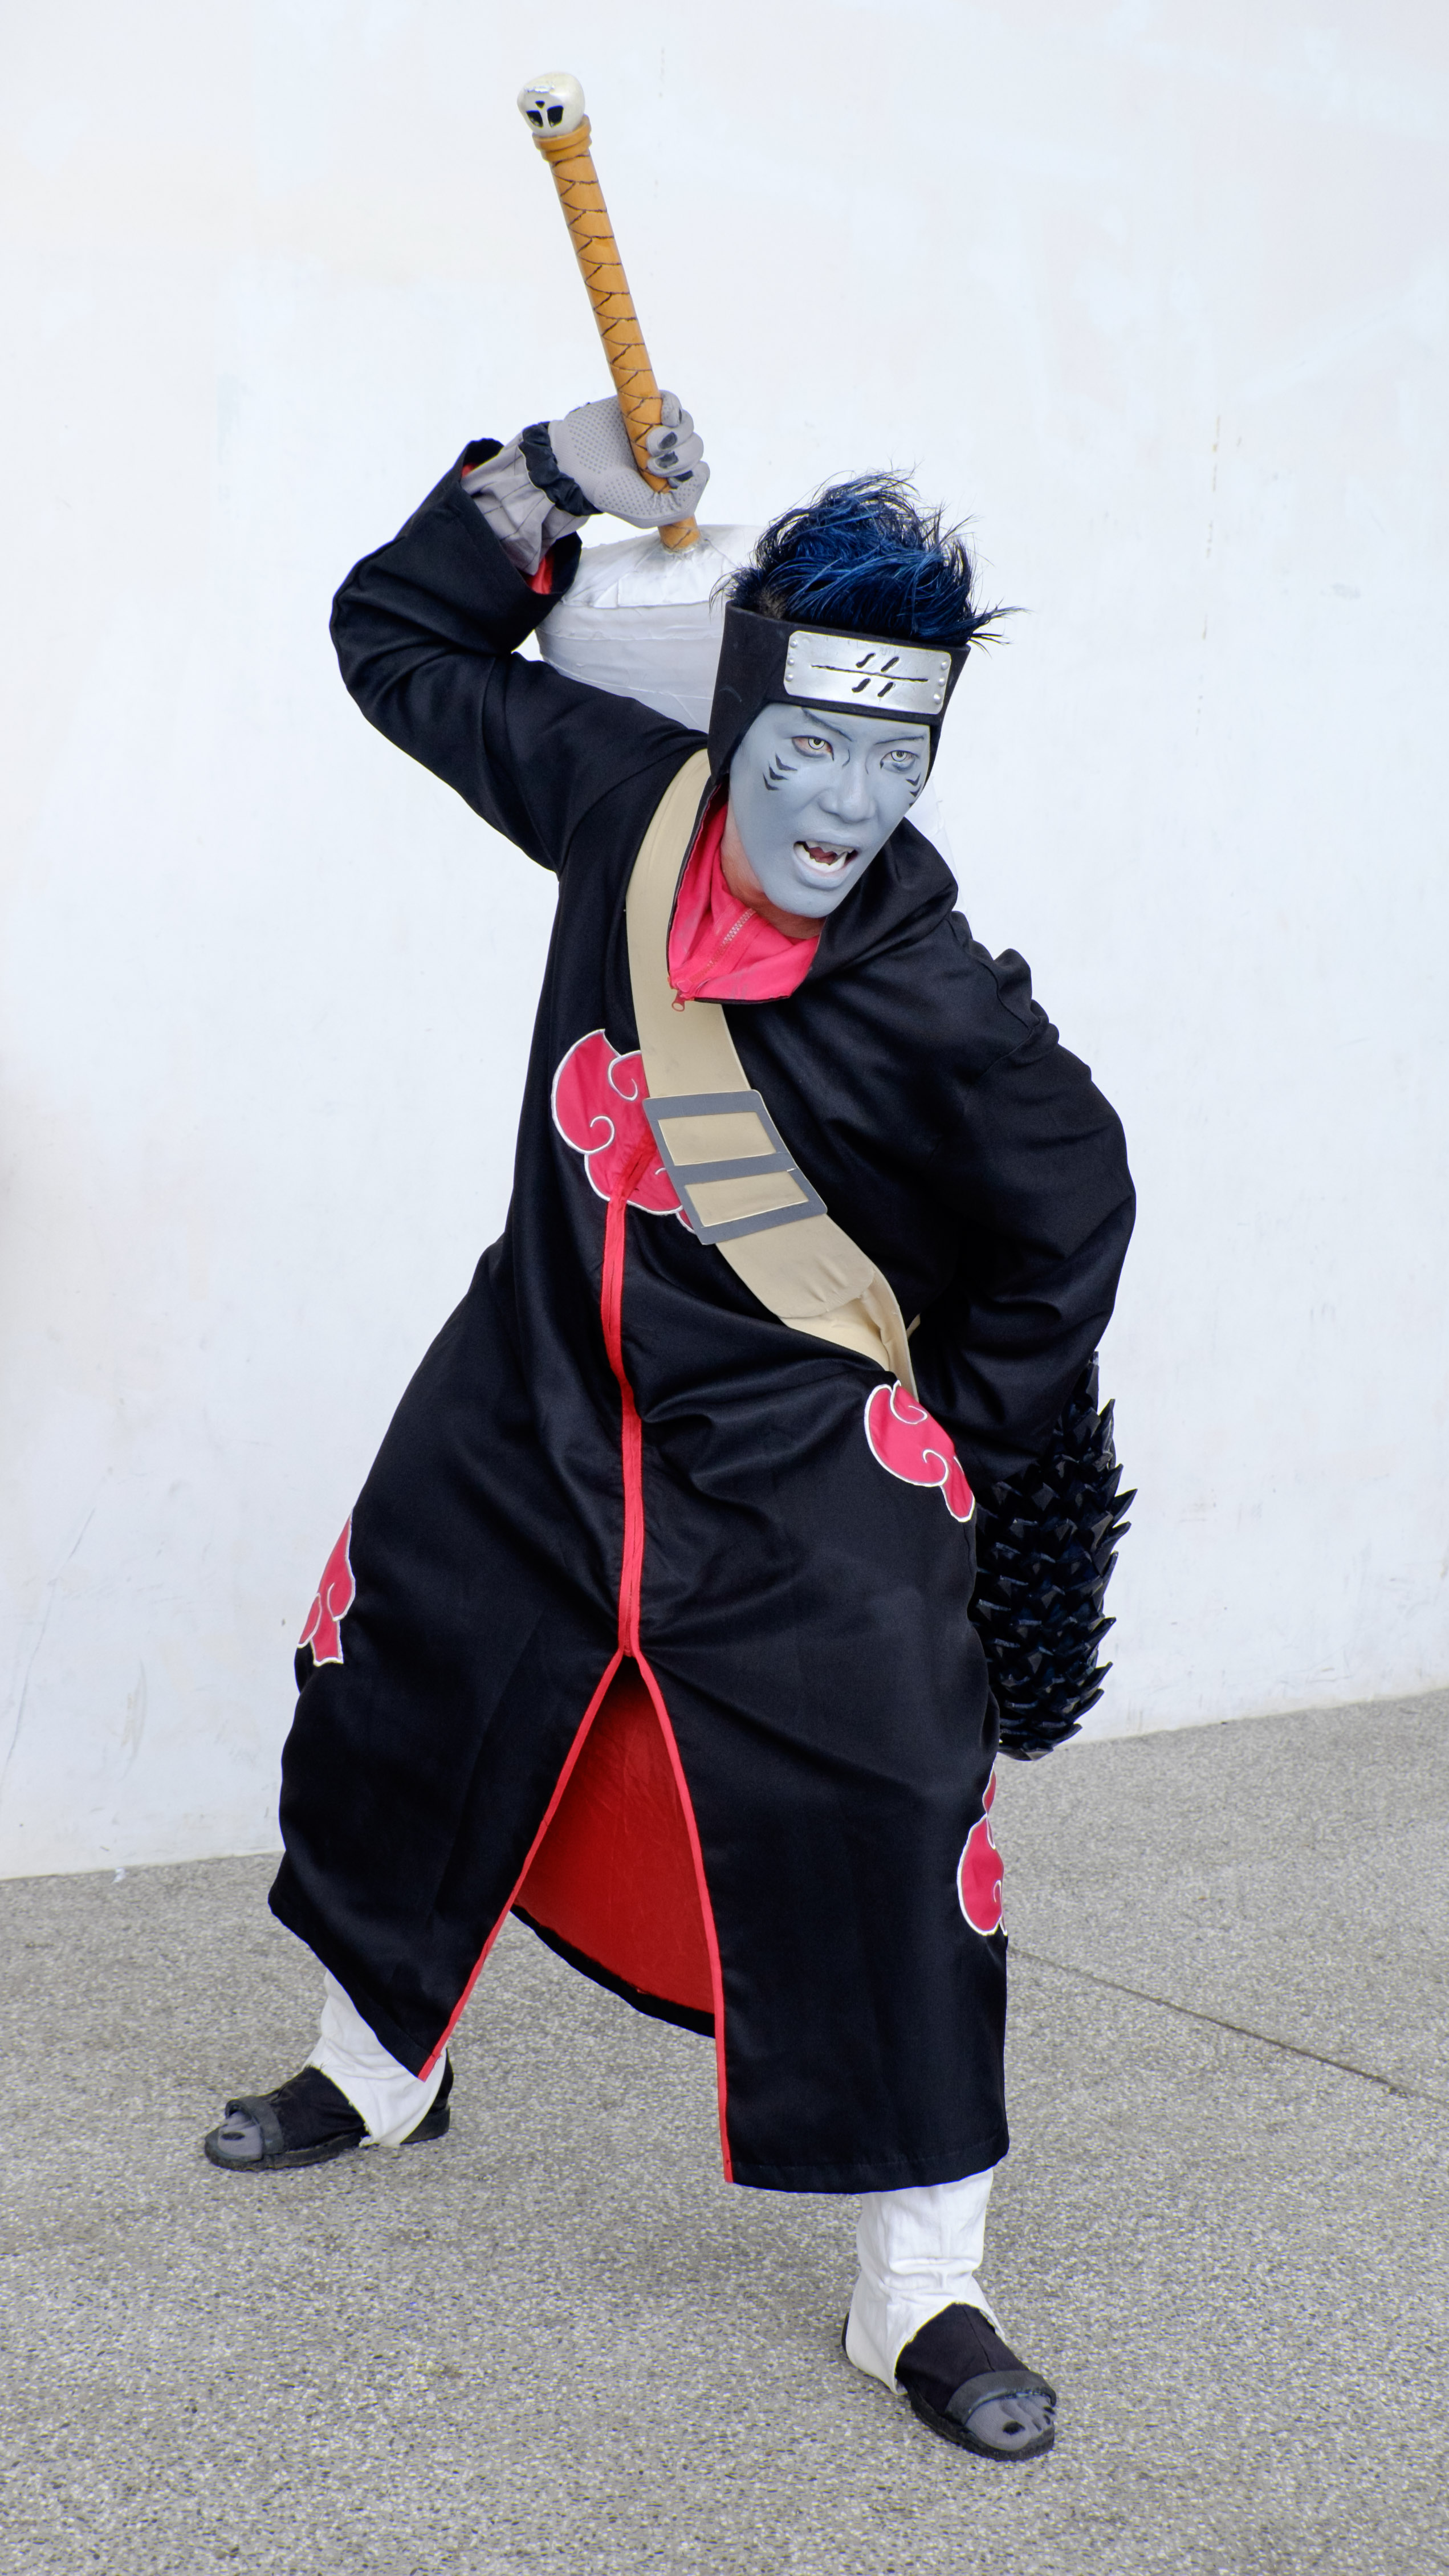 File Cosplayer Of Kisame Hoshigaki Naruto In Pf22 20150509a Jpg Wikimedia Commons